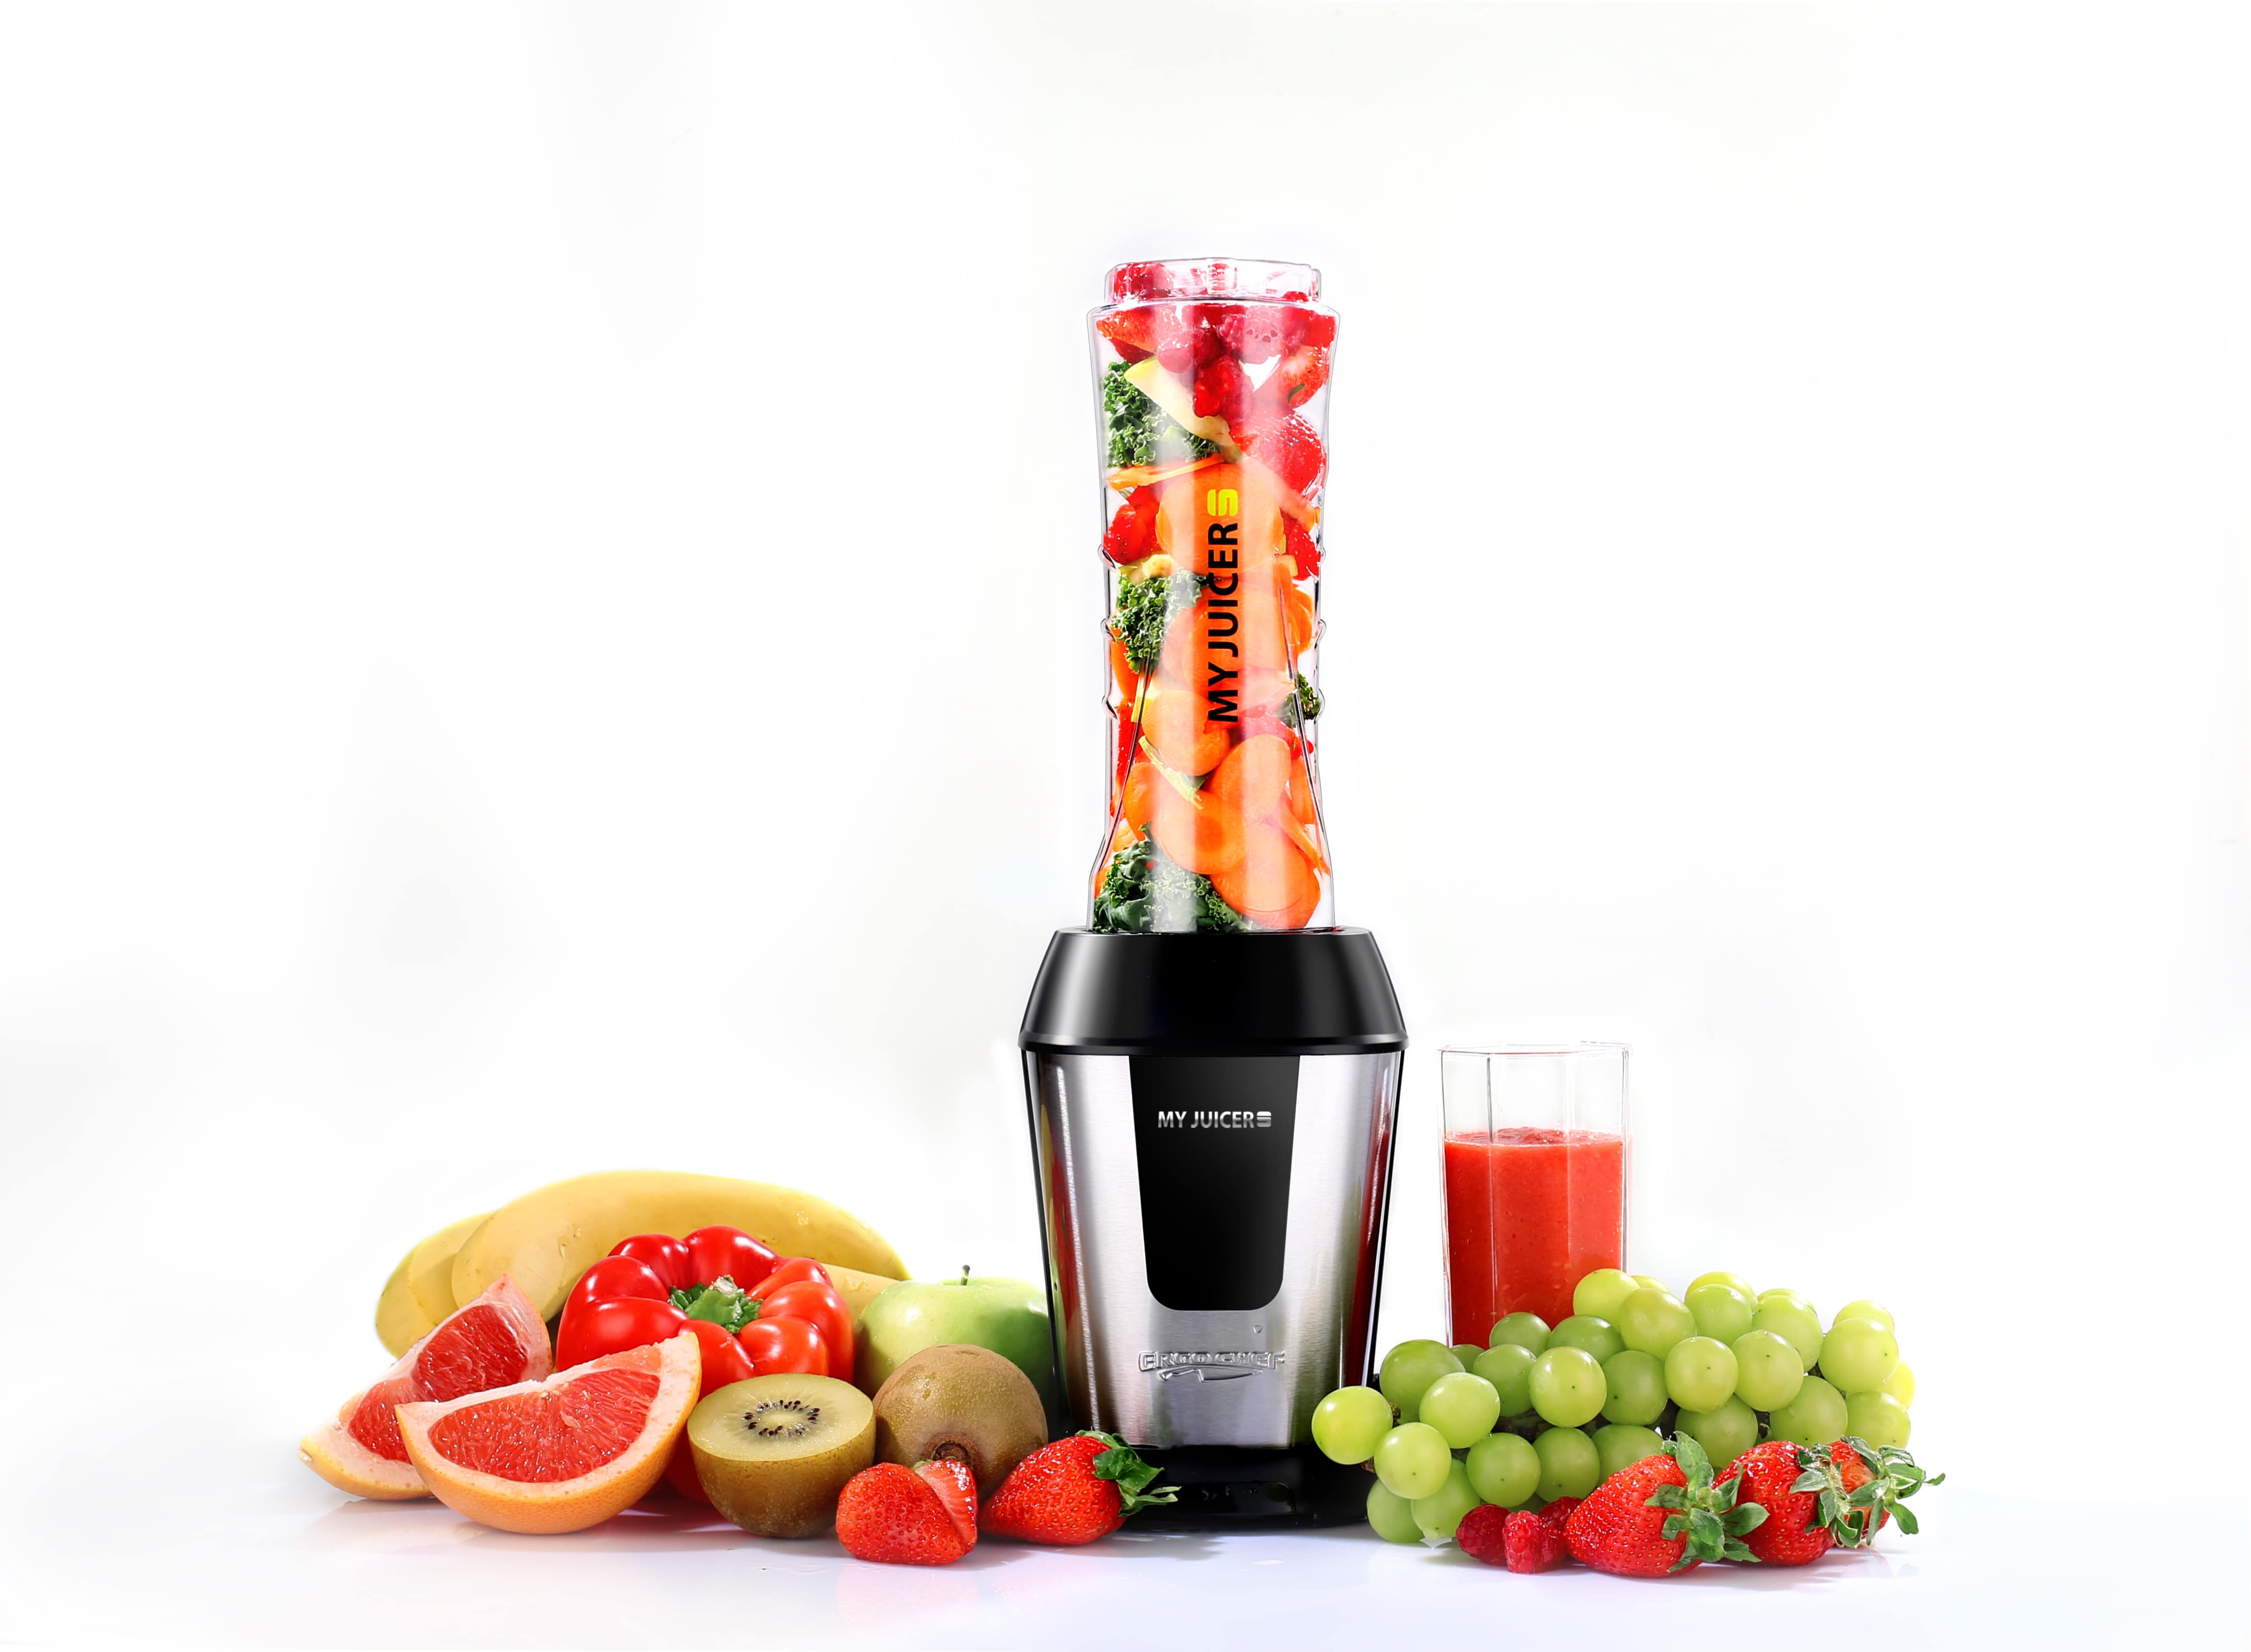 Ergo Chef My Juicer S